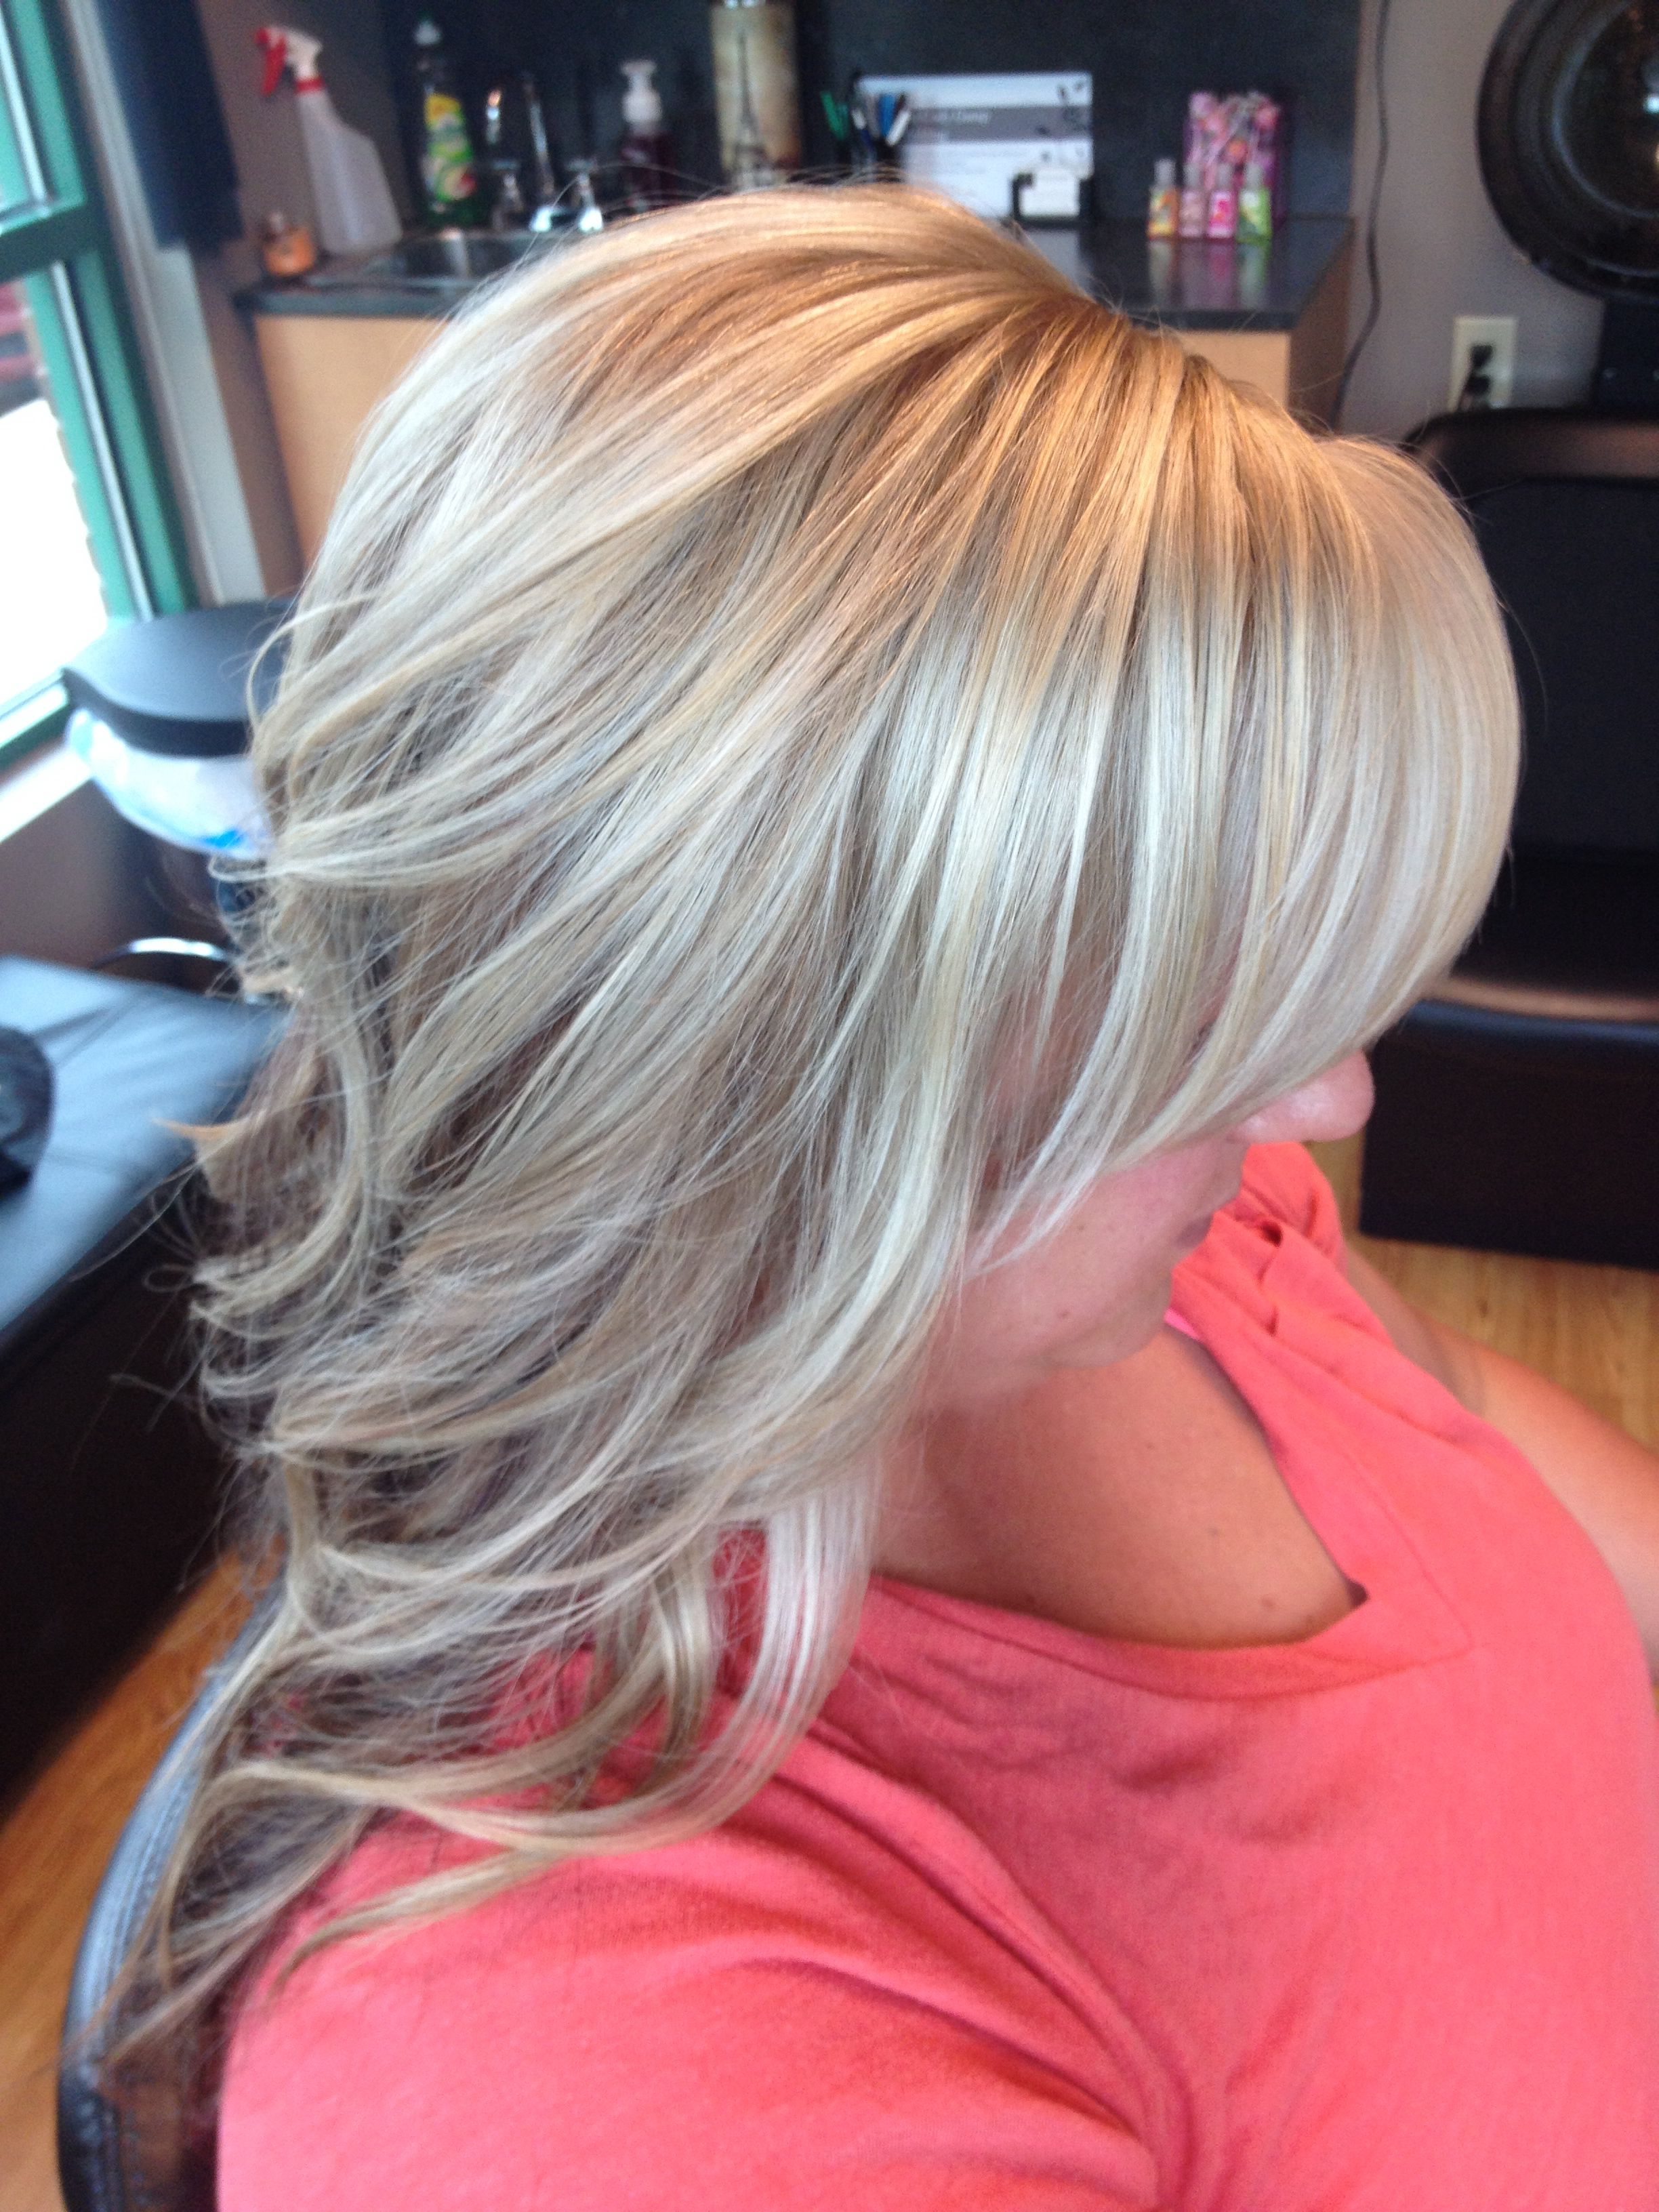 Cool Blonde Highlights Curls Hair By Melissa Lobaito